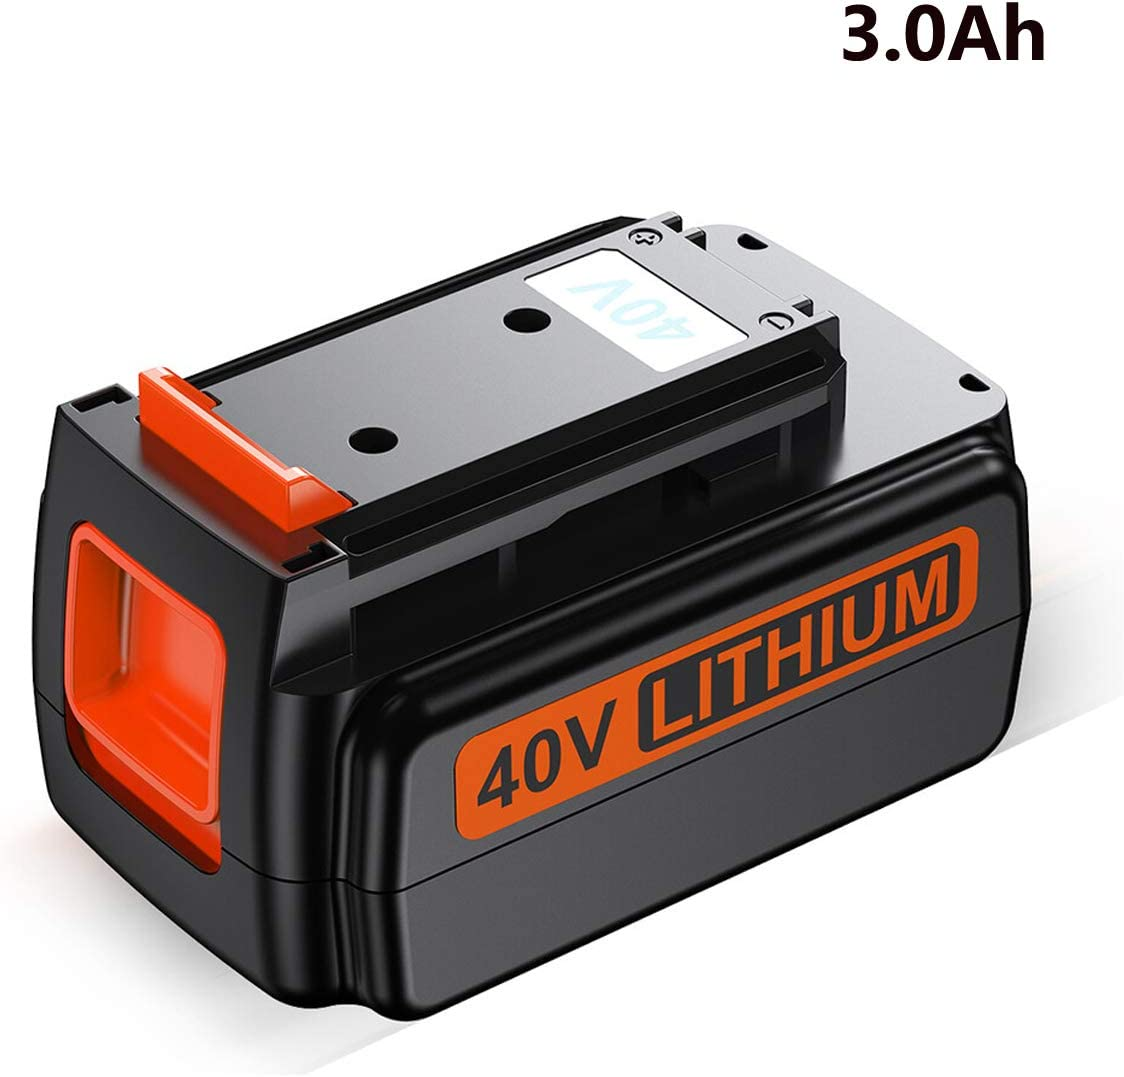 FirstPower 40V 3.0Ah Battery - Compatible with Black & Decker 40V Lithium Ion Cordless Drills Power Tools LBX2040 LBX36 LBXR36 LBXR2036